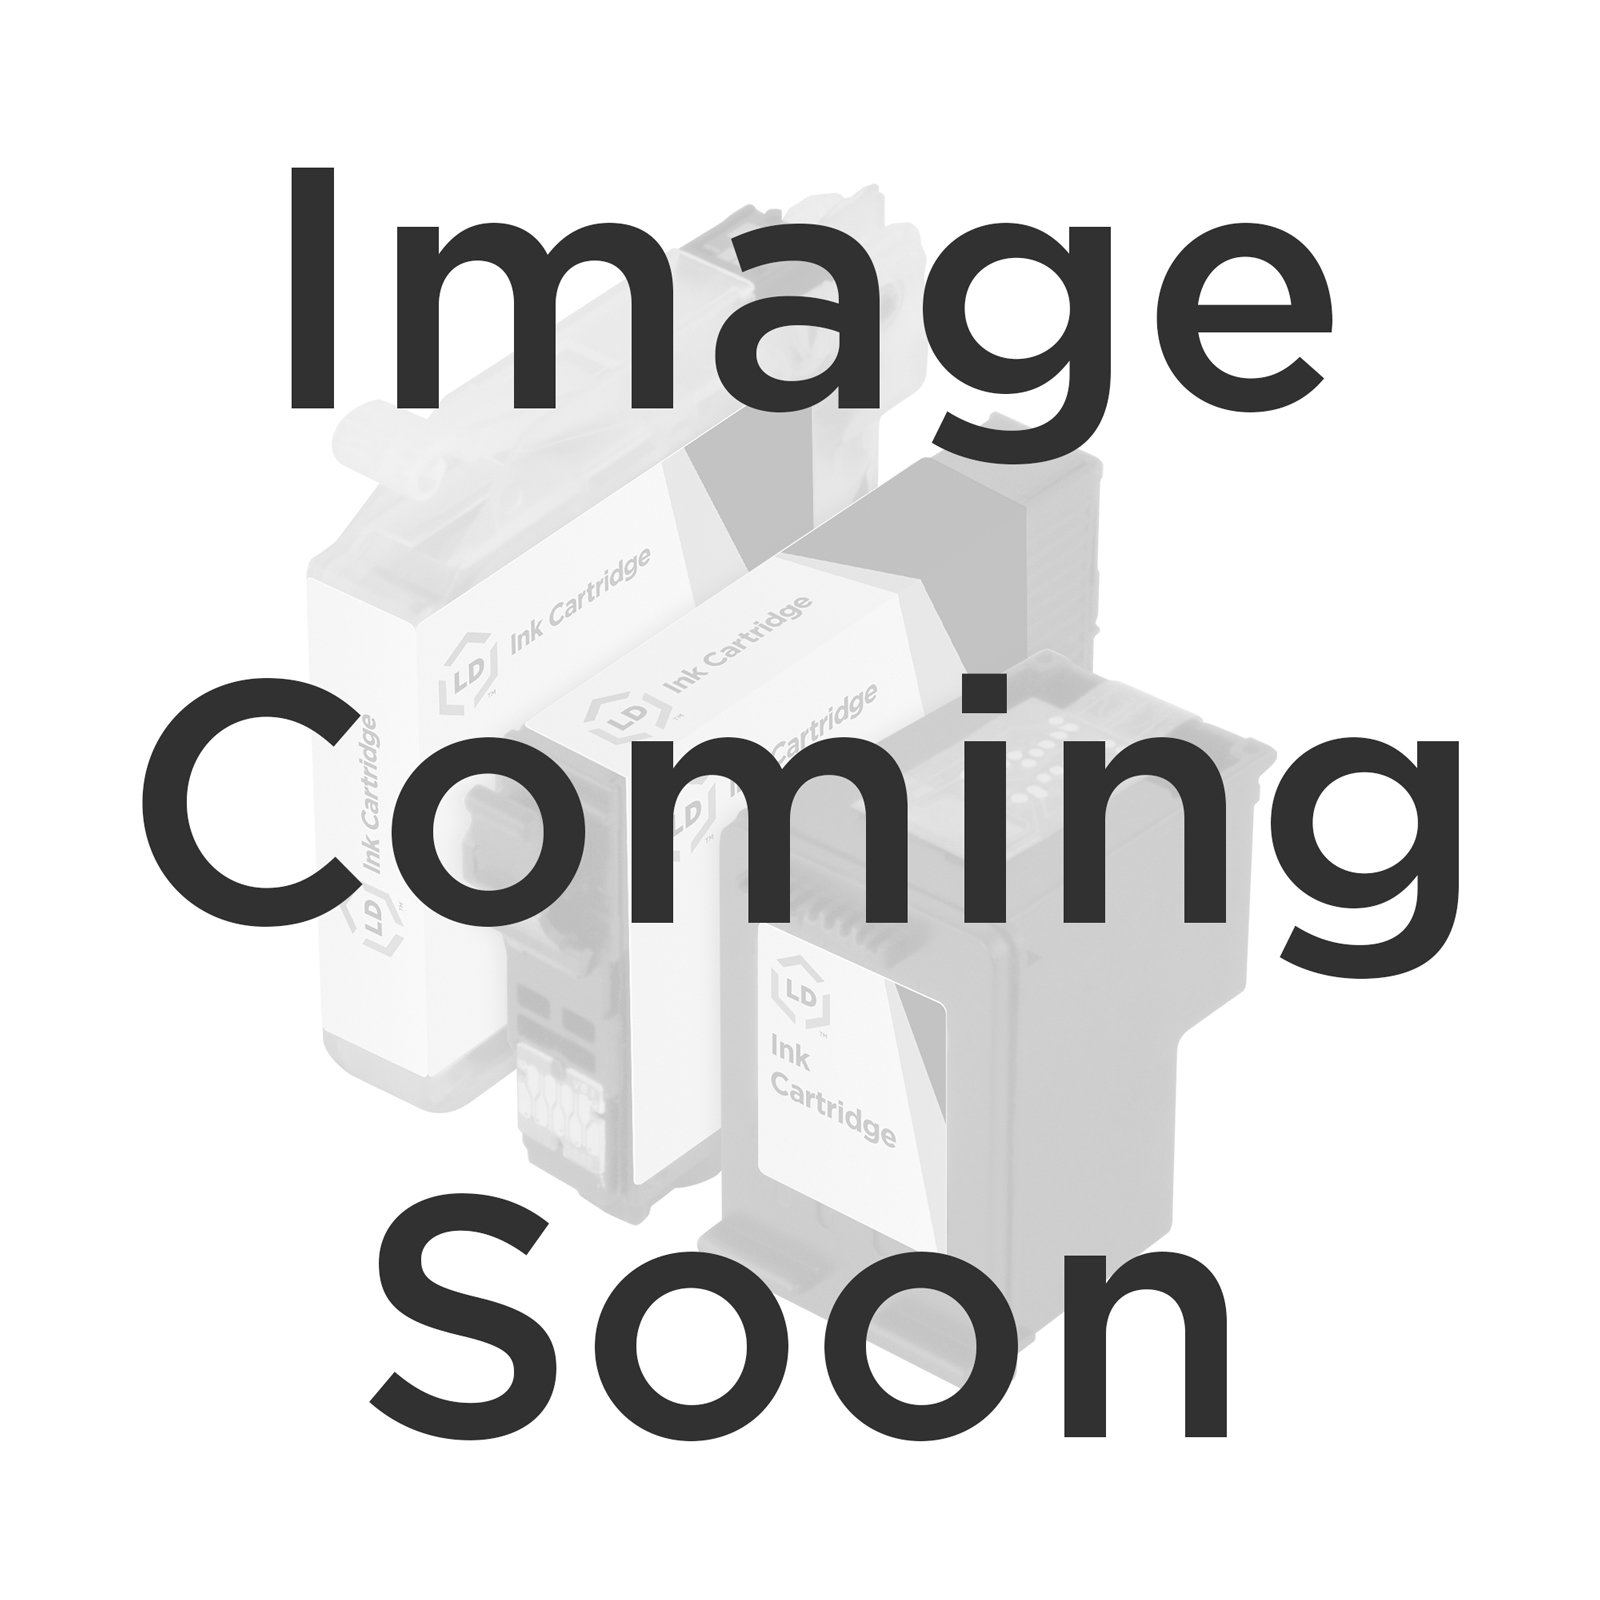 "Roaring Spring Third Grade Composition Book - 50 Sheet - Ruled - 7.75"" x 9.75"" - Red Marble Cover"